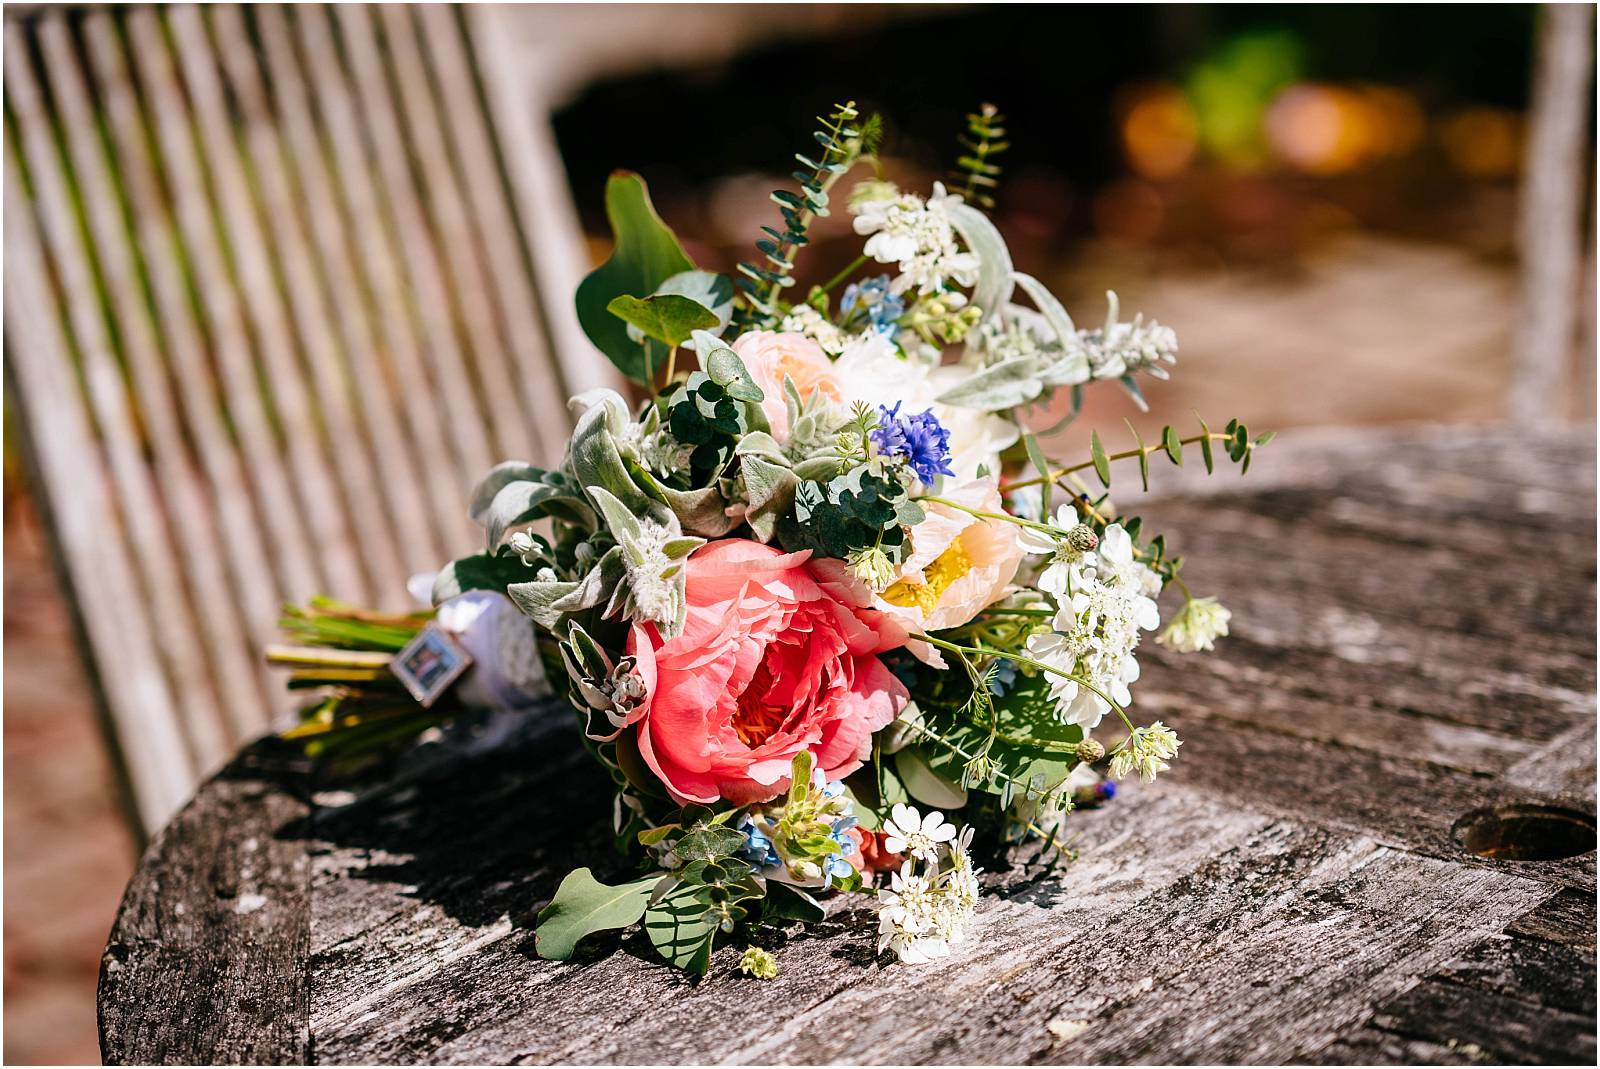 gill pike wedding bouquet at gate street barn